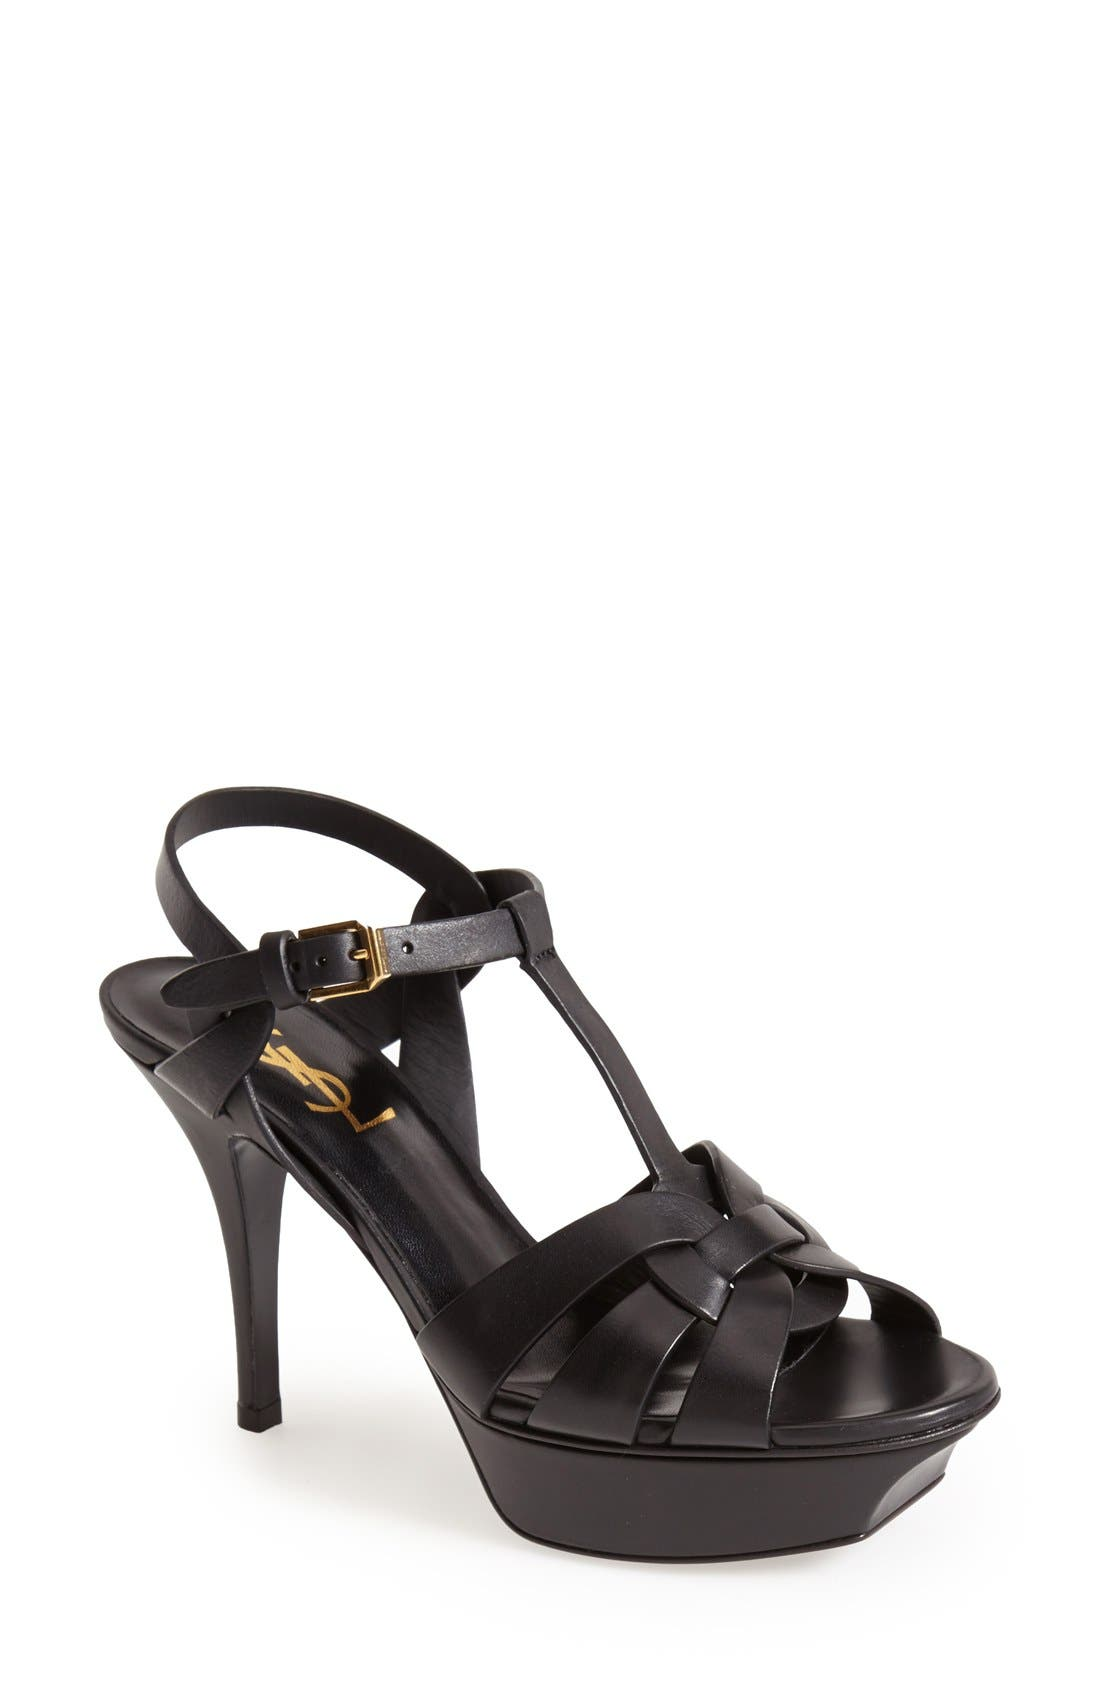 SAINT LAURENT Tribute T-Strap Sandal, Main, color, 001